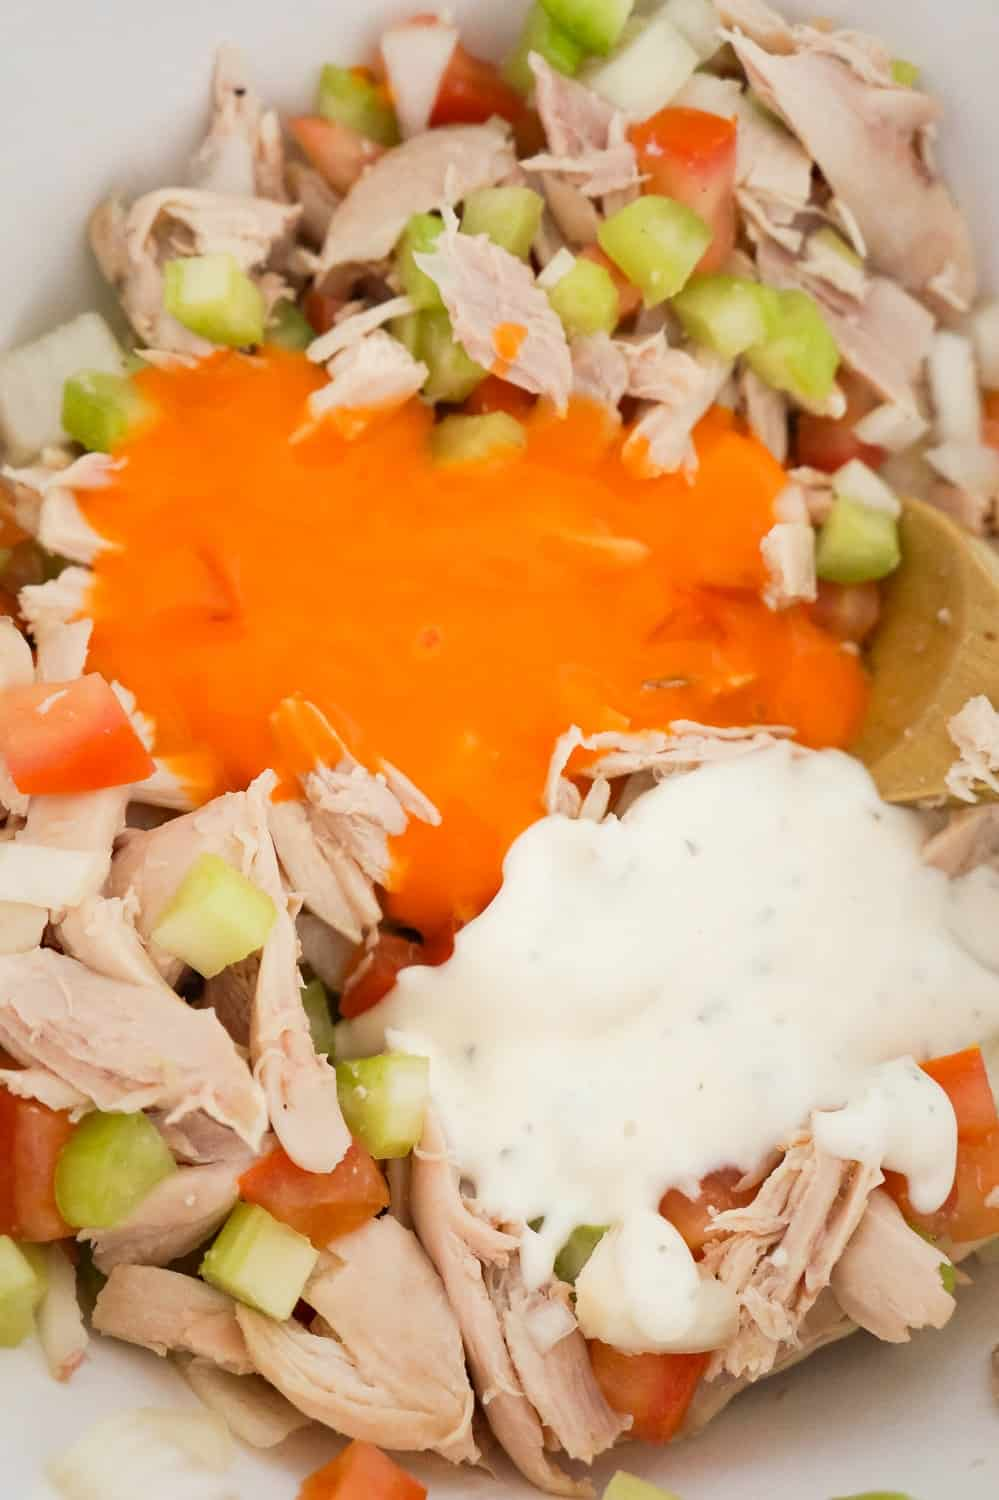 buffalo sauce and ranch dressing on top of shredded chicken and diced vegetables in a mixing bowl